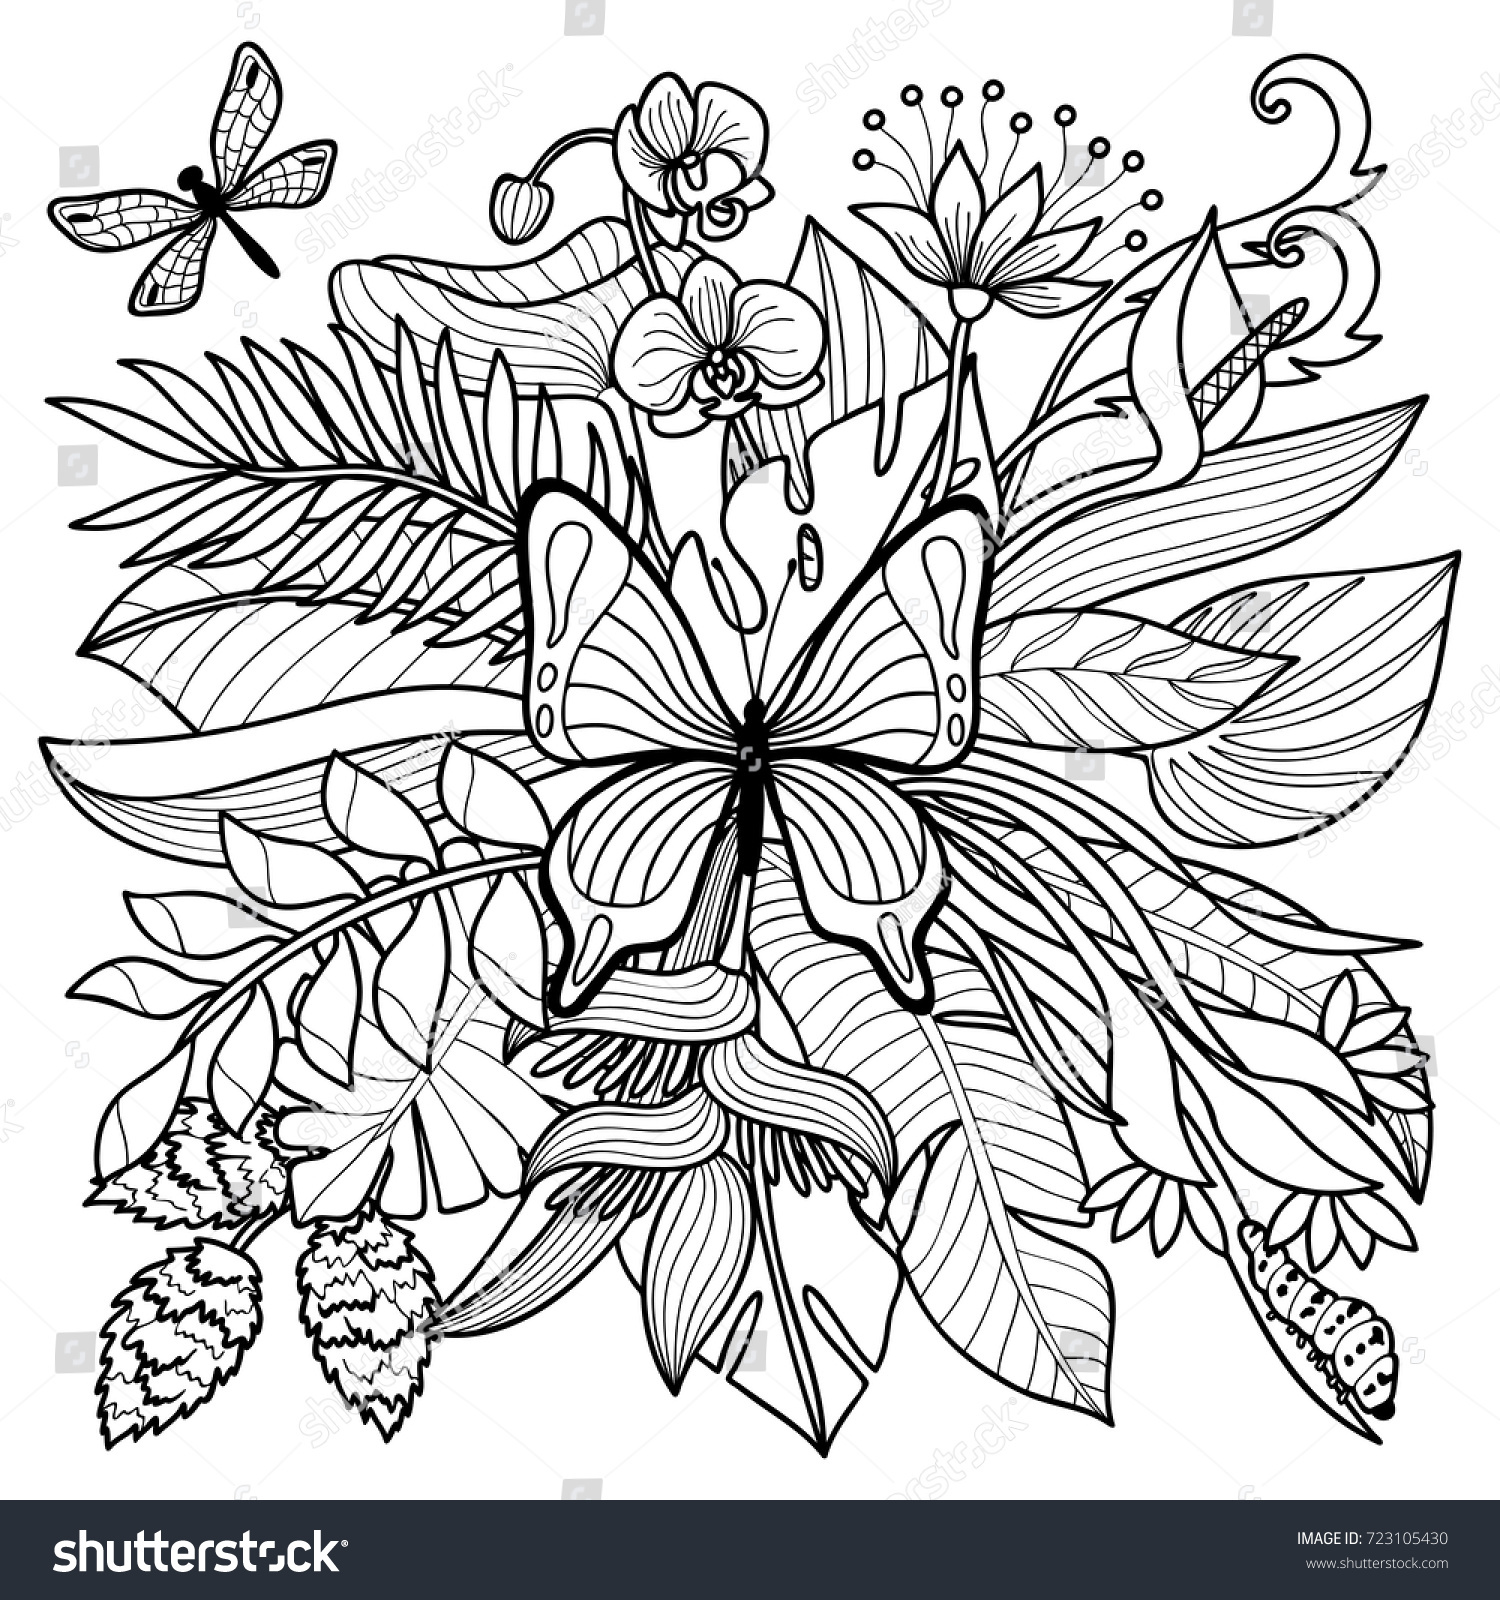 Tropical Flowers Plants Insects Composition Floral Stock Vector